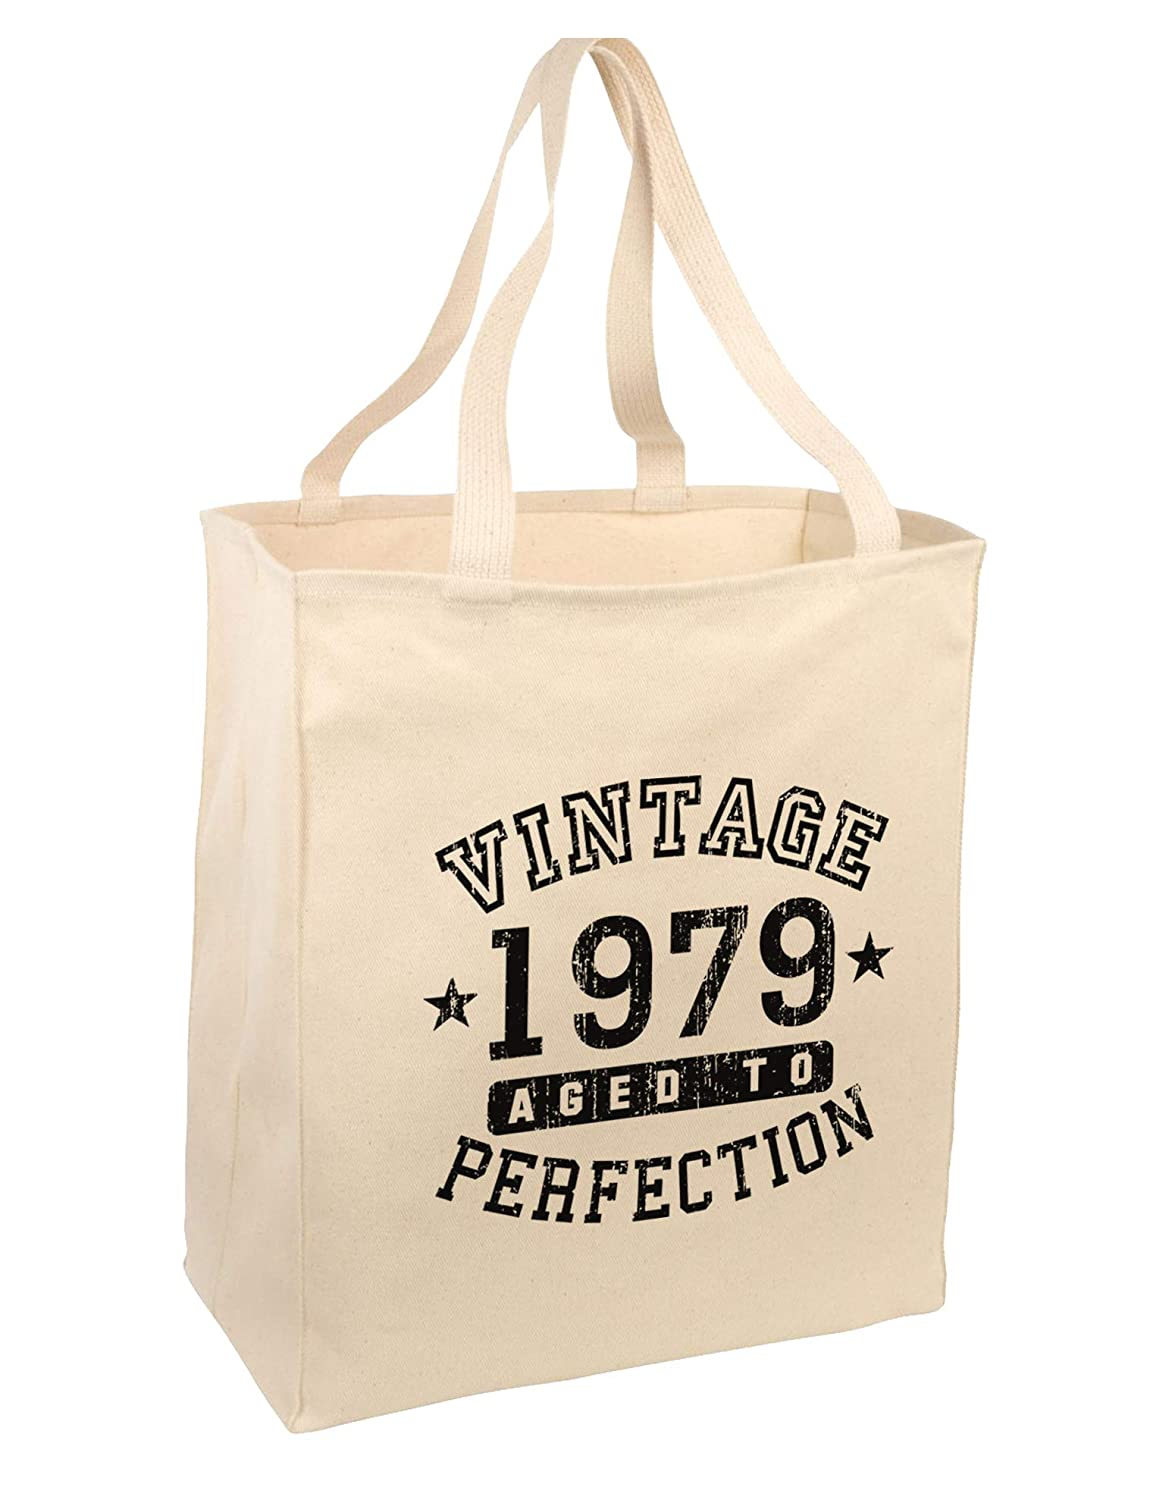 40th Birthday Gift Tote Shopping Cotton Bag Vintage 1979 Matured To Perfection